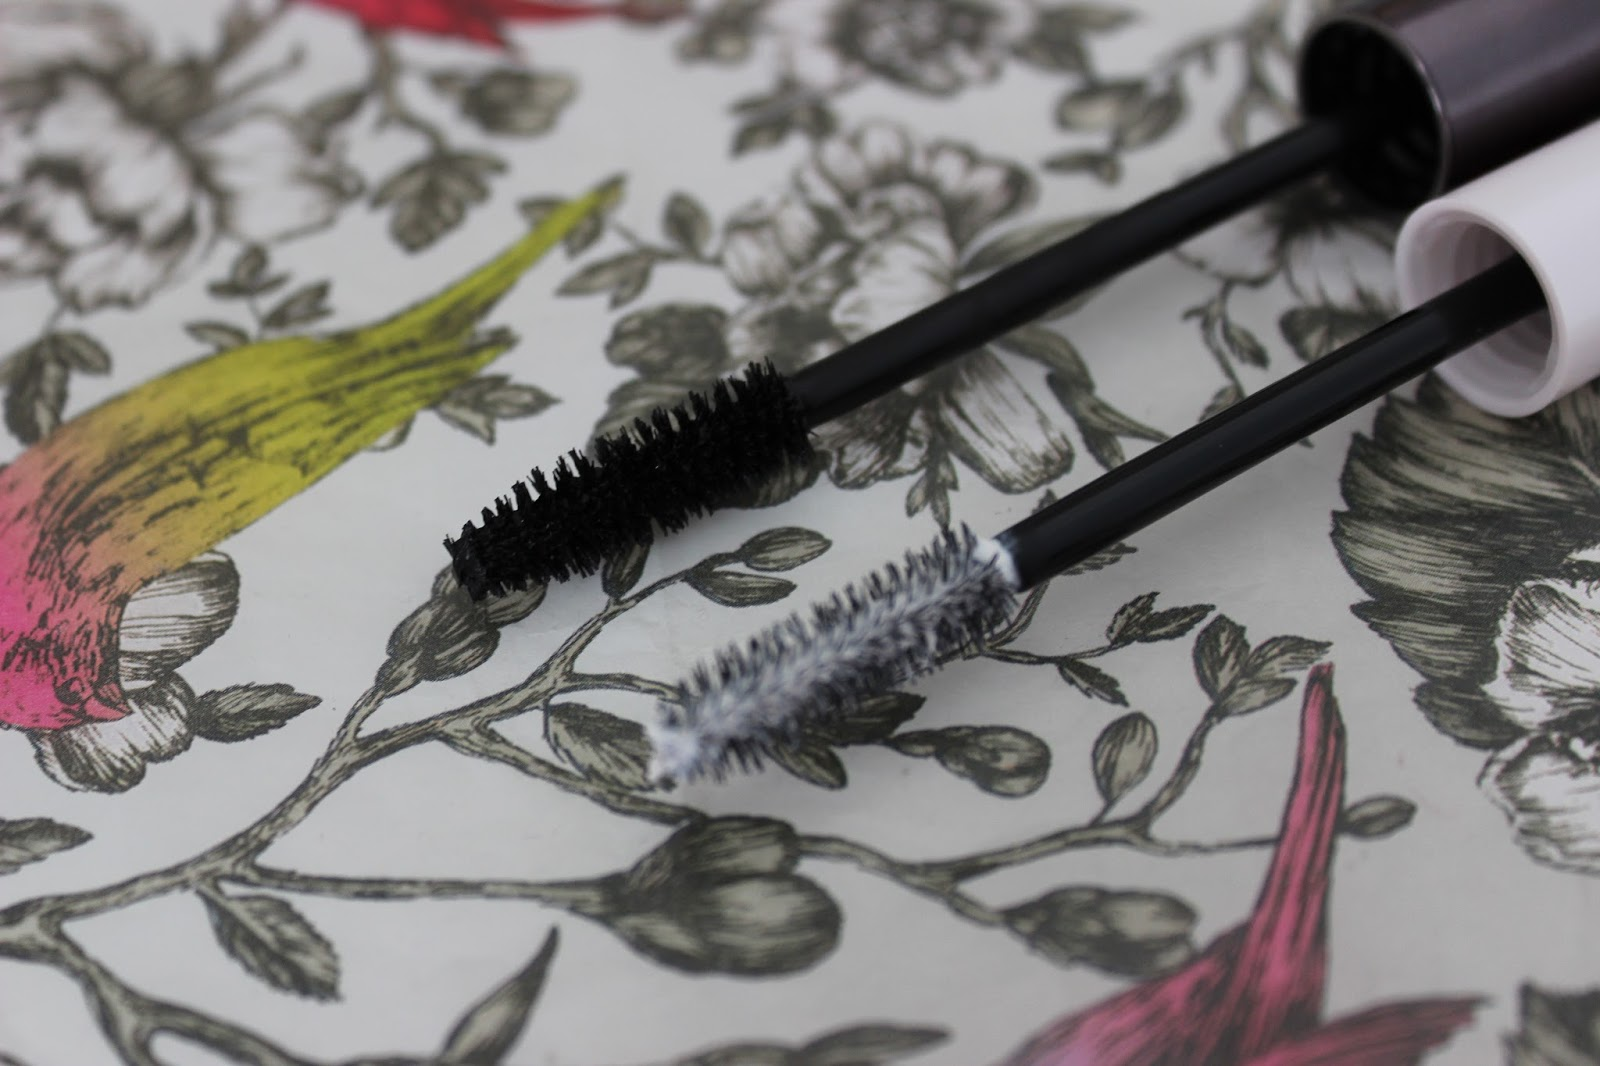 Urban Decay Perversion mascara and Subversion lash primer brush wands